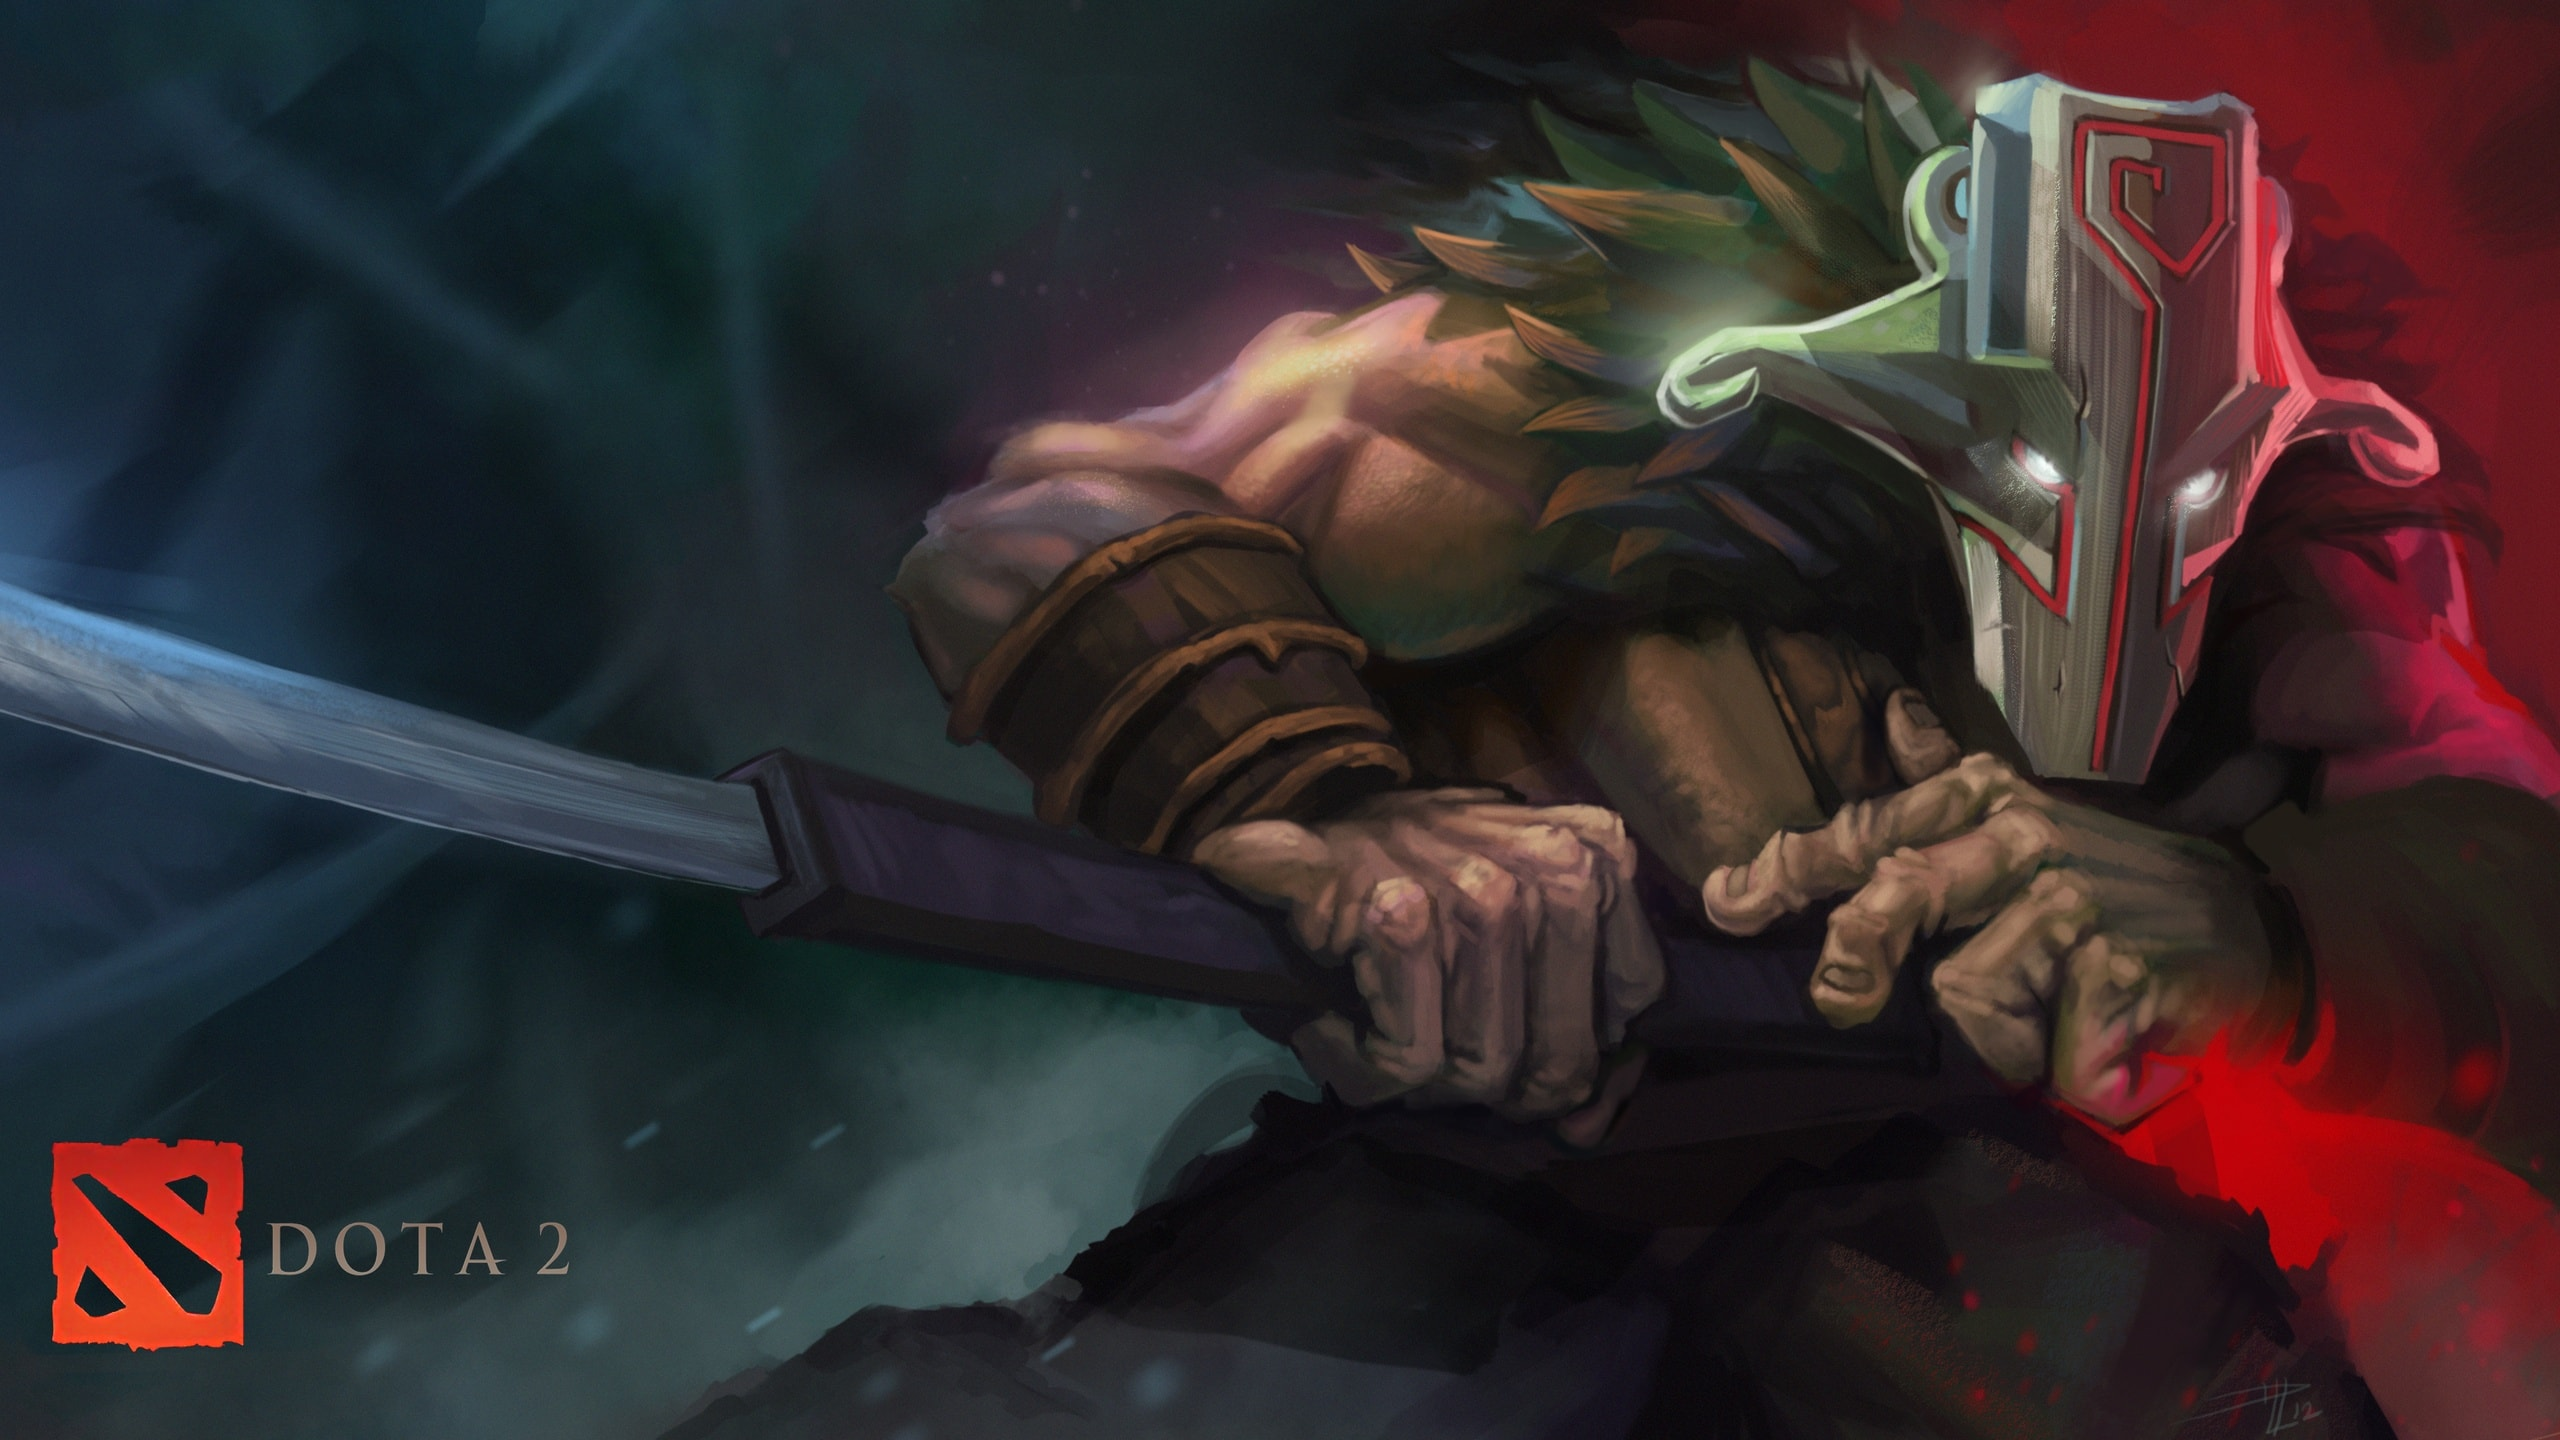 Dota2 Juggernaut HD Wallpapers